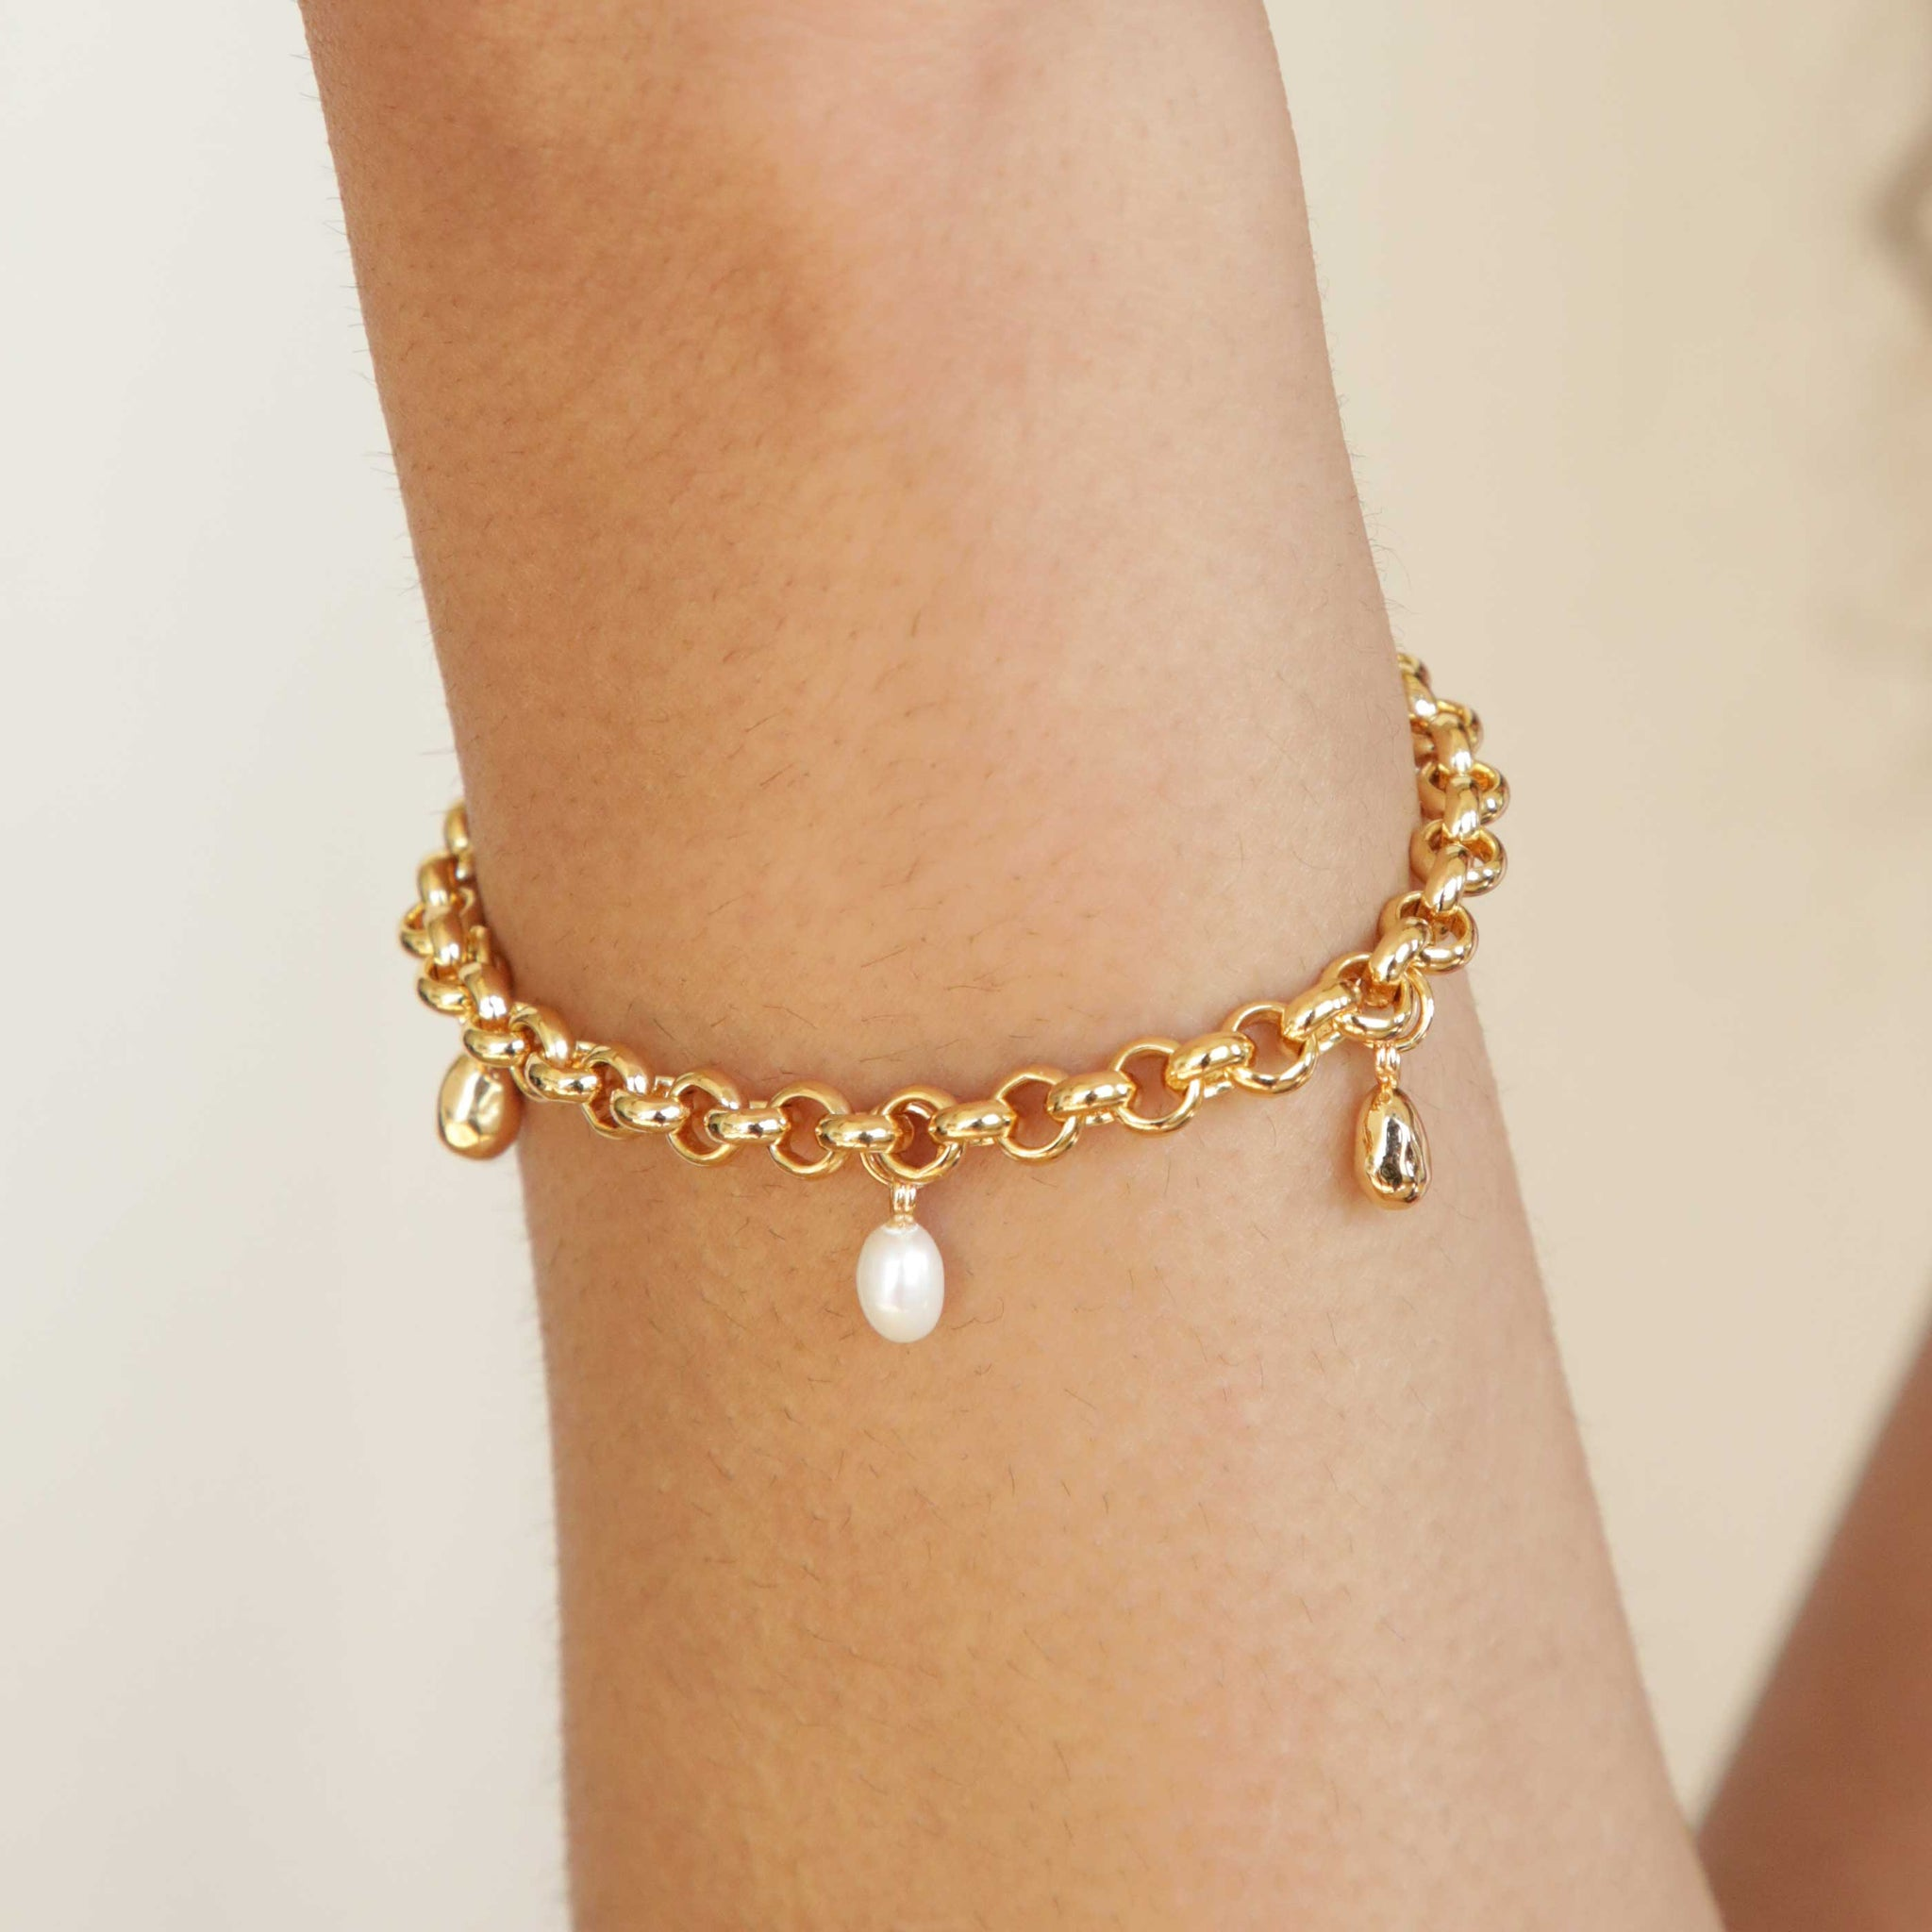 Illume Pebble Charm Bracelet in Gold